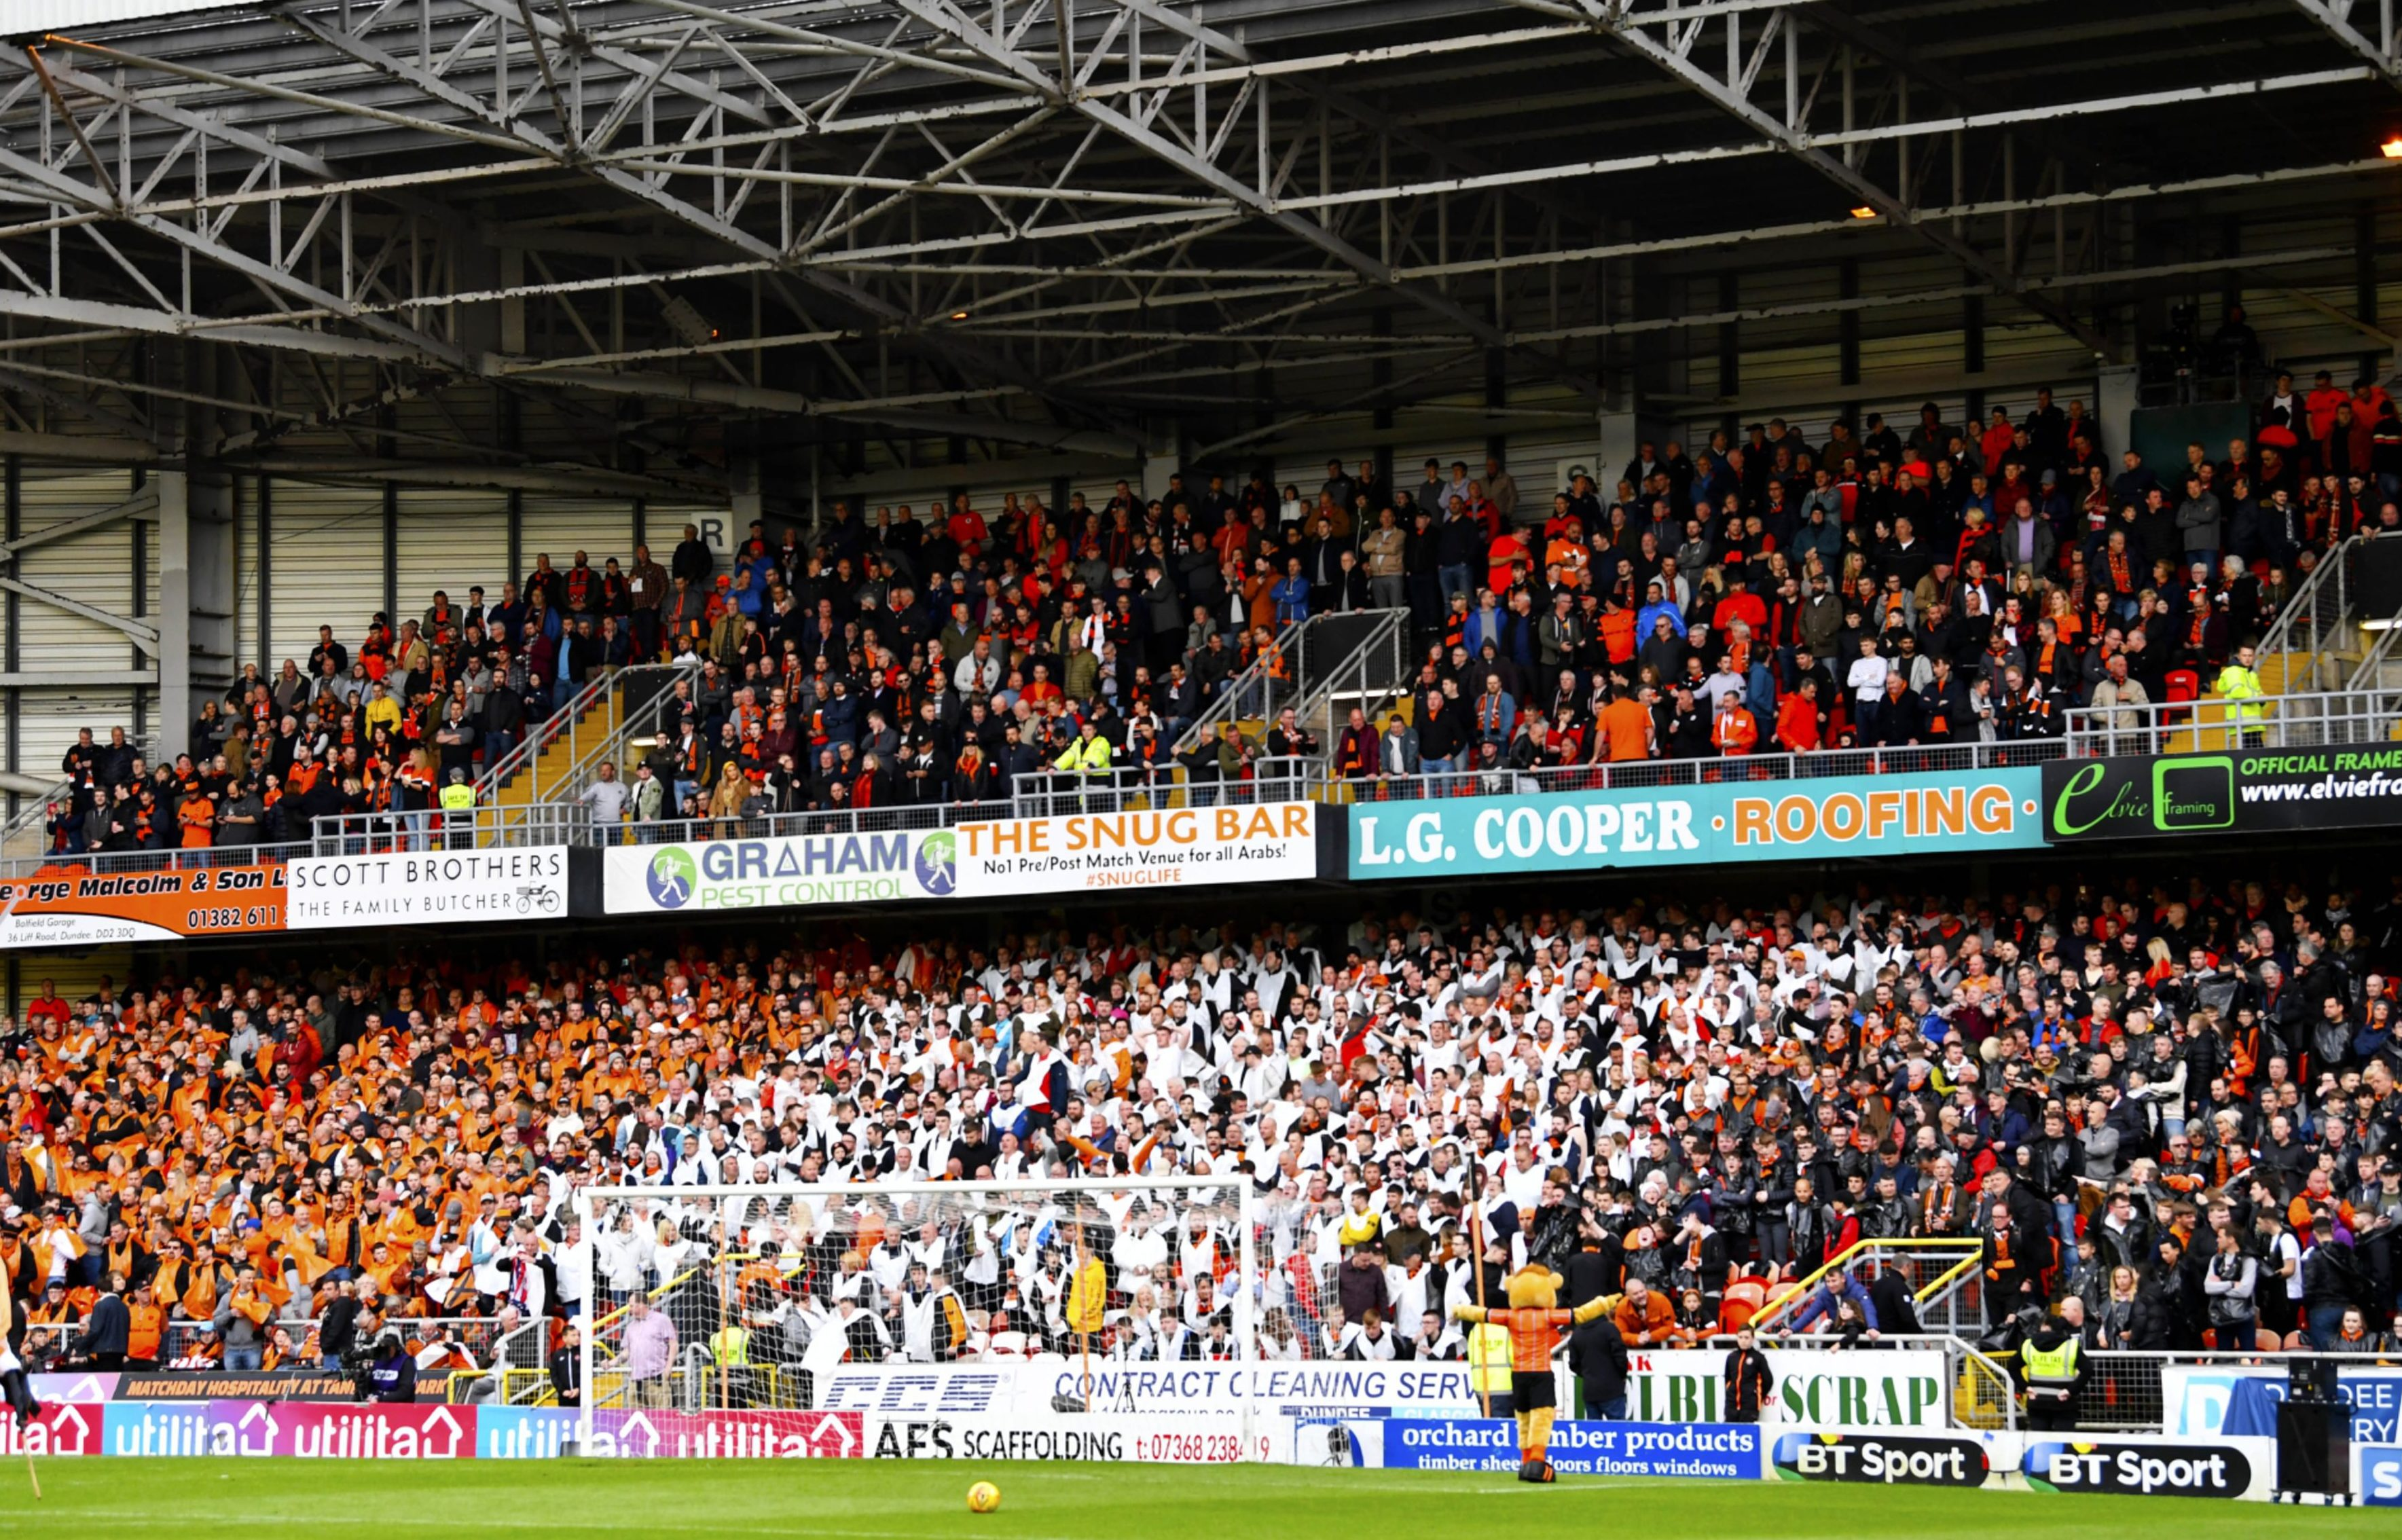 Dundee United's allocation has sold out.